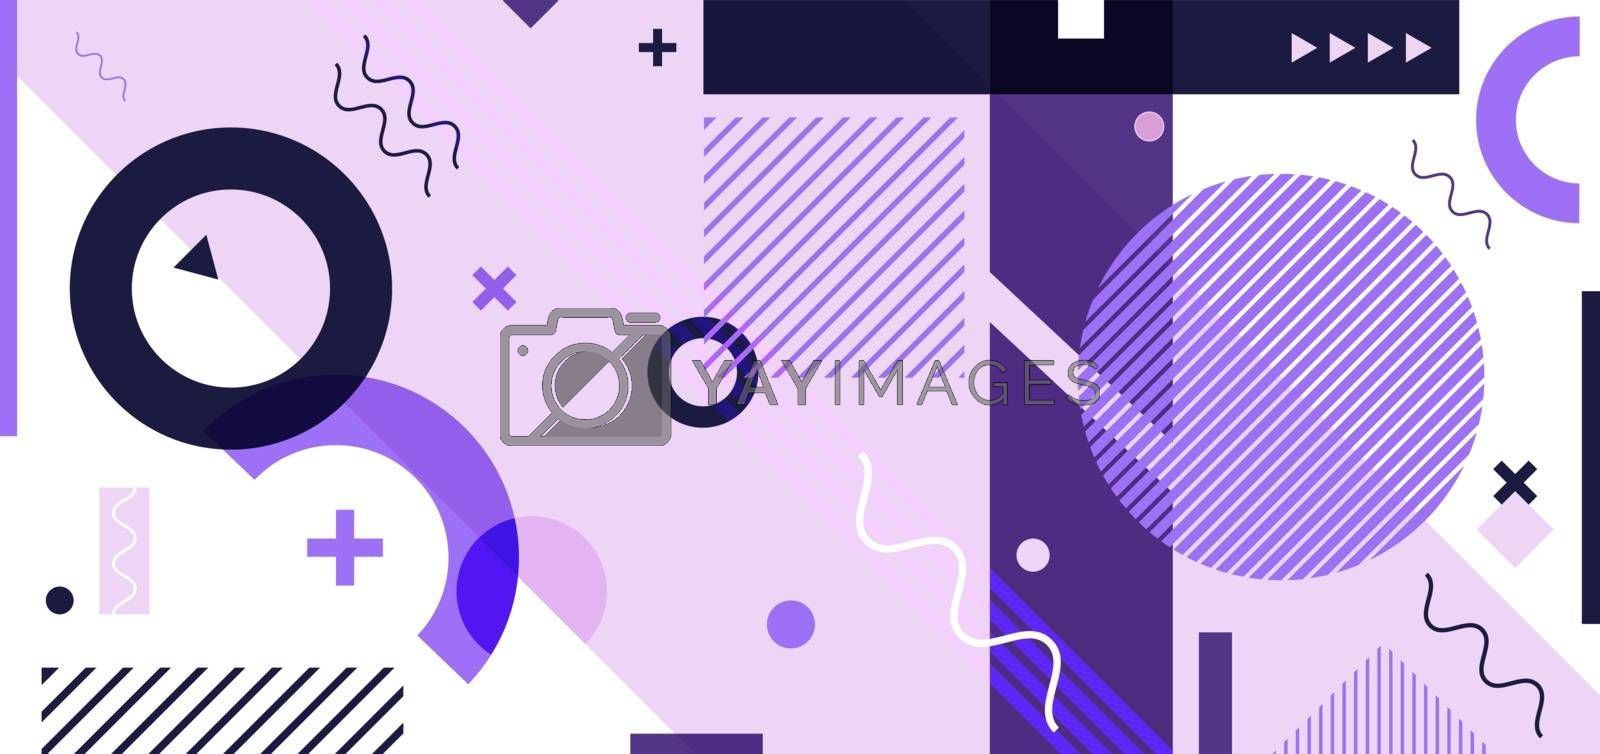 Abstract minimal geometric pattern purple memphis style white background. You can use for banner web design, presentation, poster, cover brochure, template, etc. Vector illustration